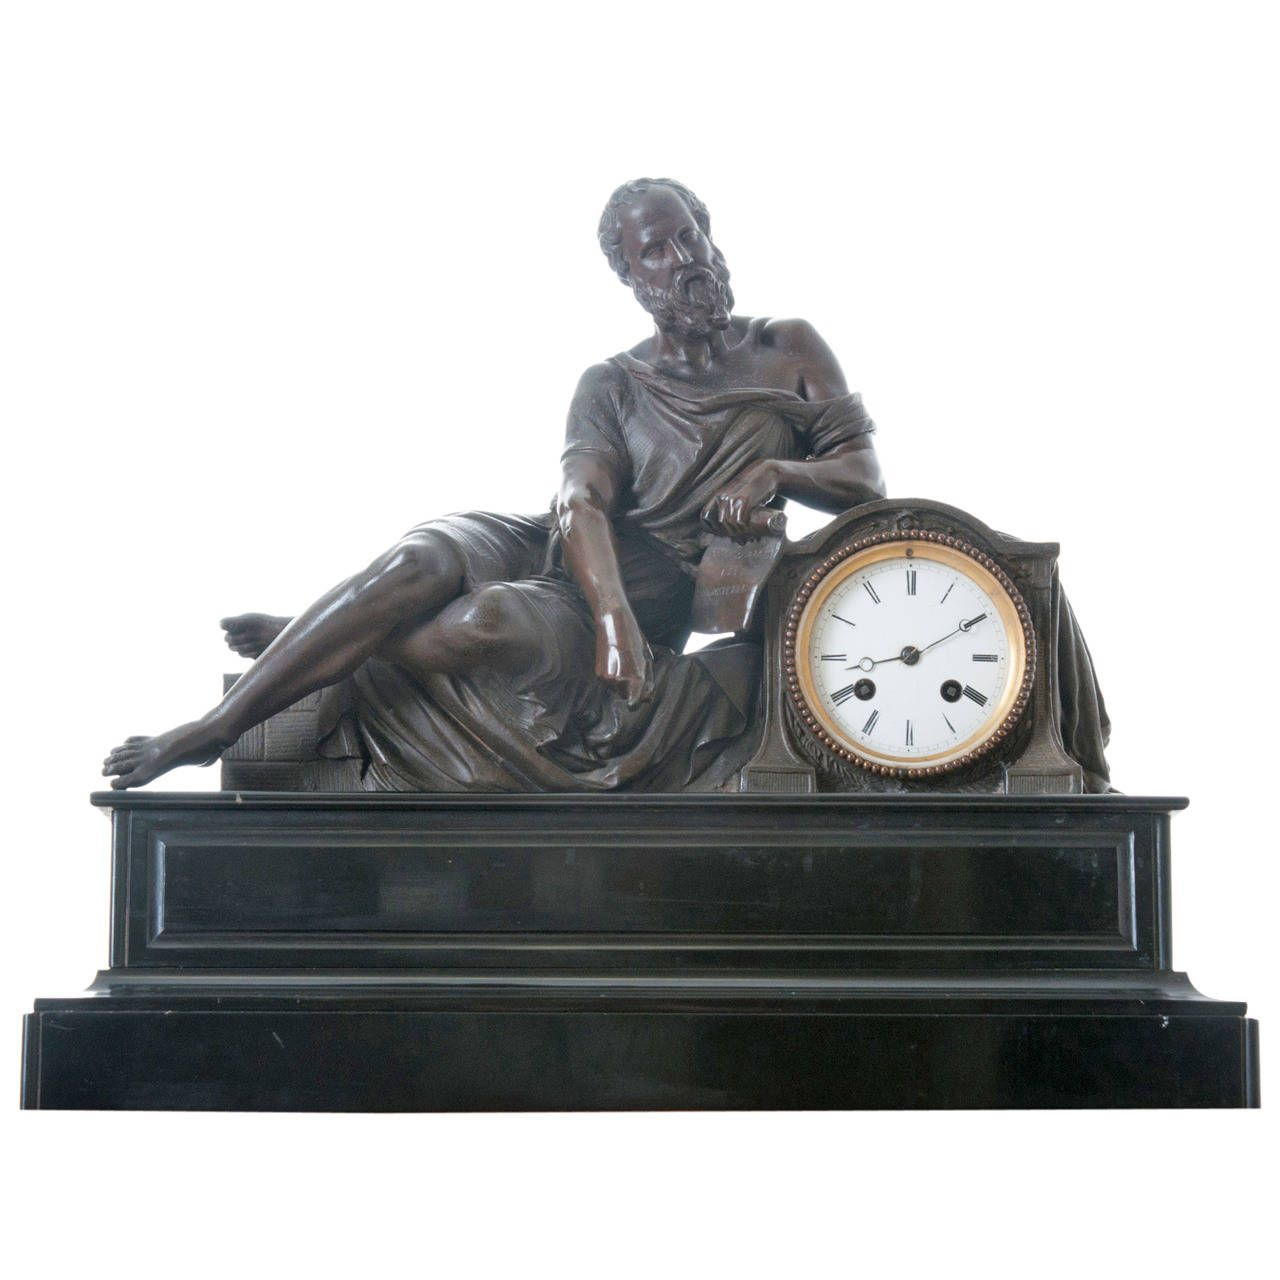 French 19th Century Spelter and Marble Clock   From a unique collection of antique and modern clocks at https://www.1stdibs.com/furniture/decorative-objects/clocks/